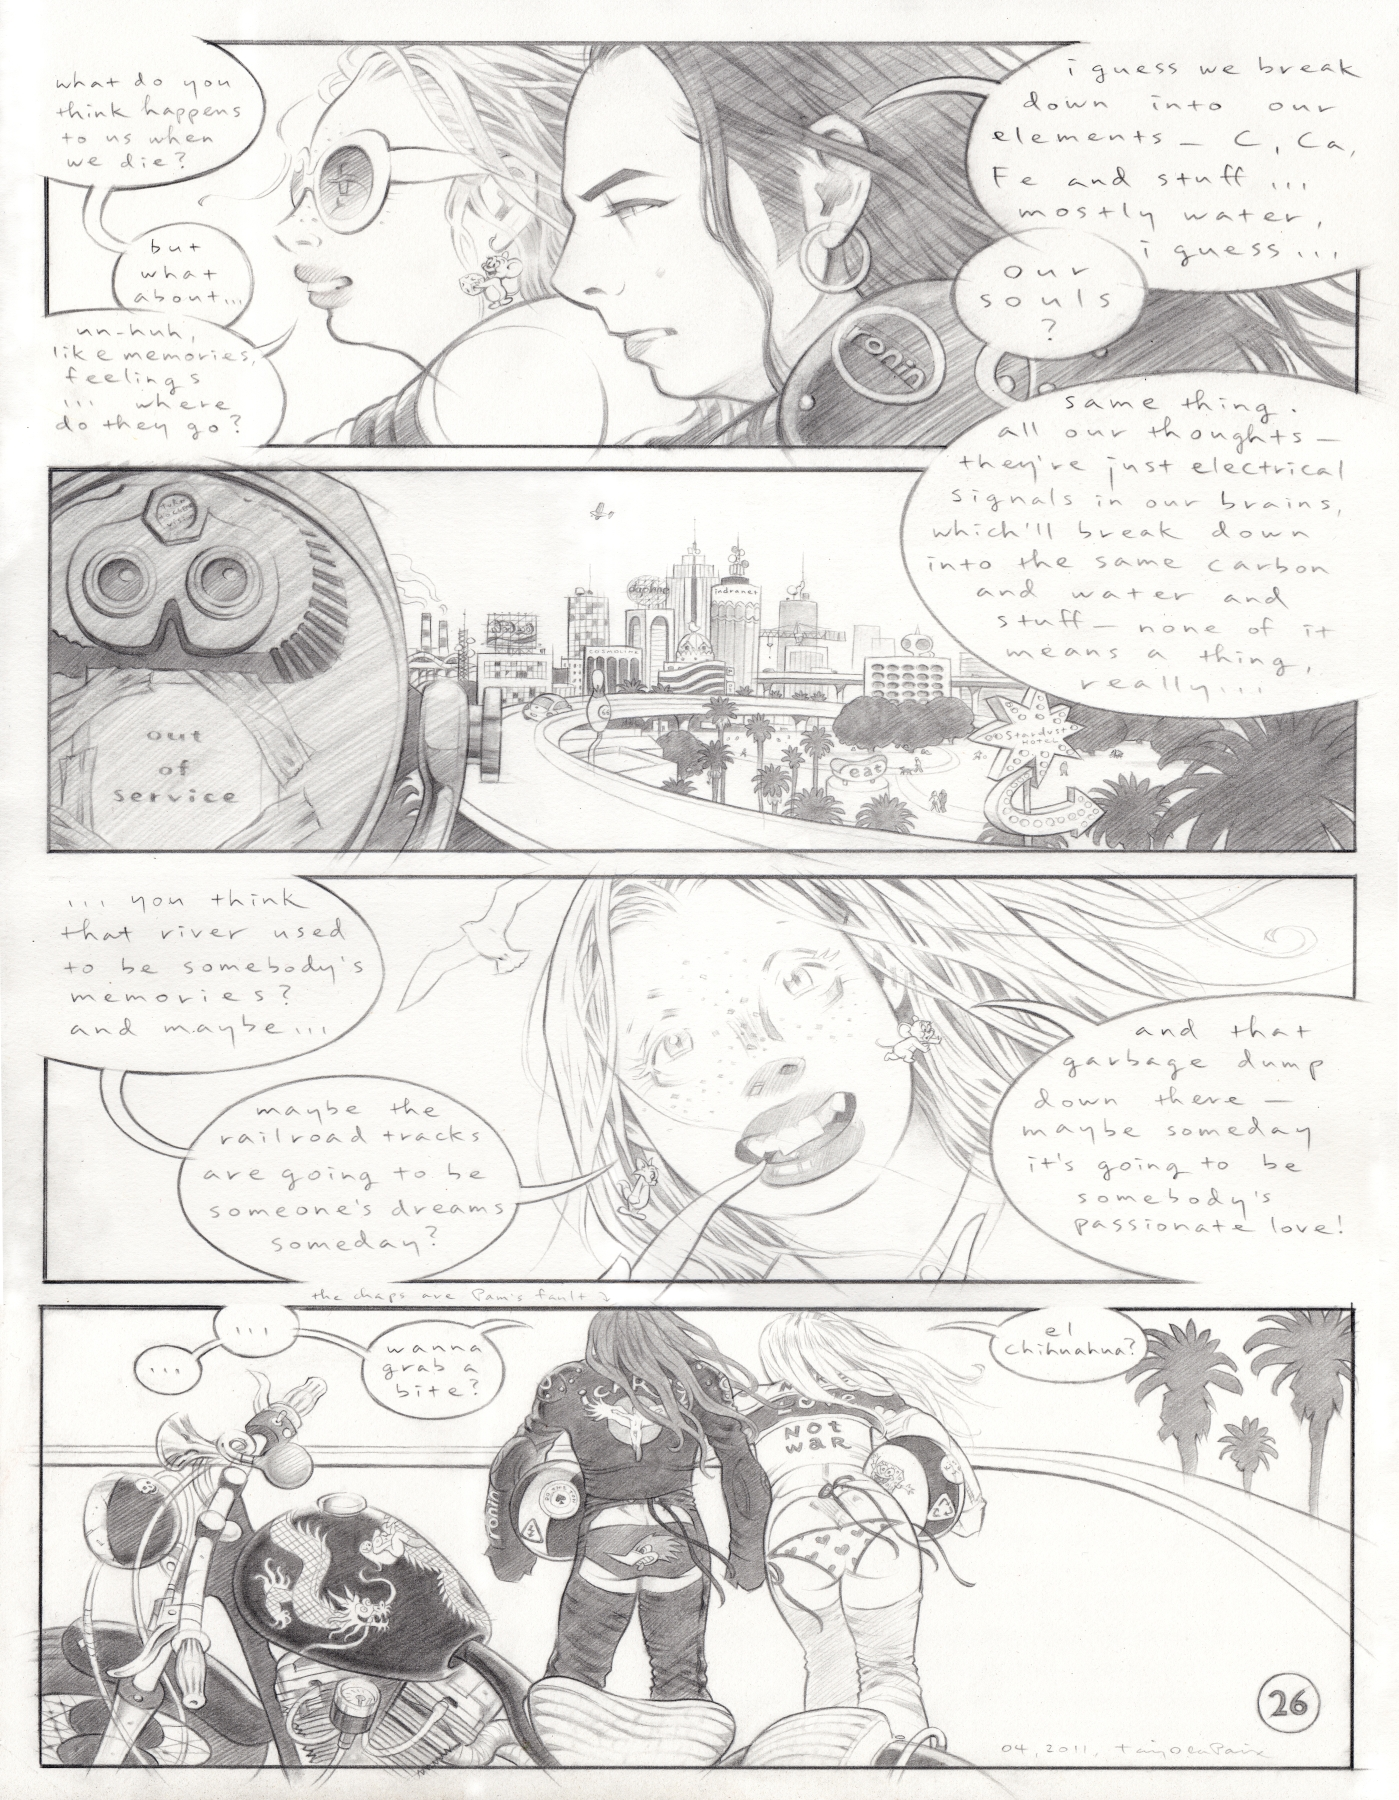 Page 26, 2011, pencil on paper, 17 x 13 inches, private collection